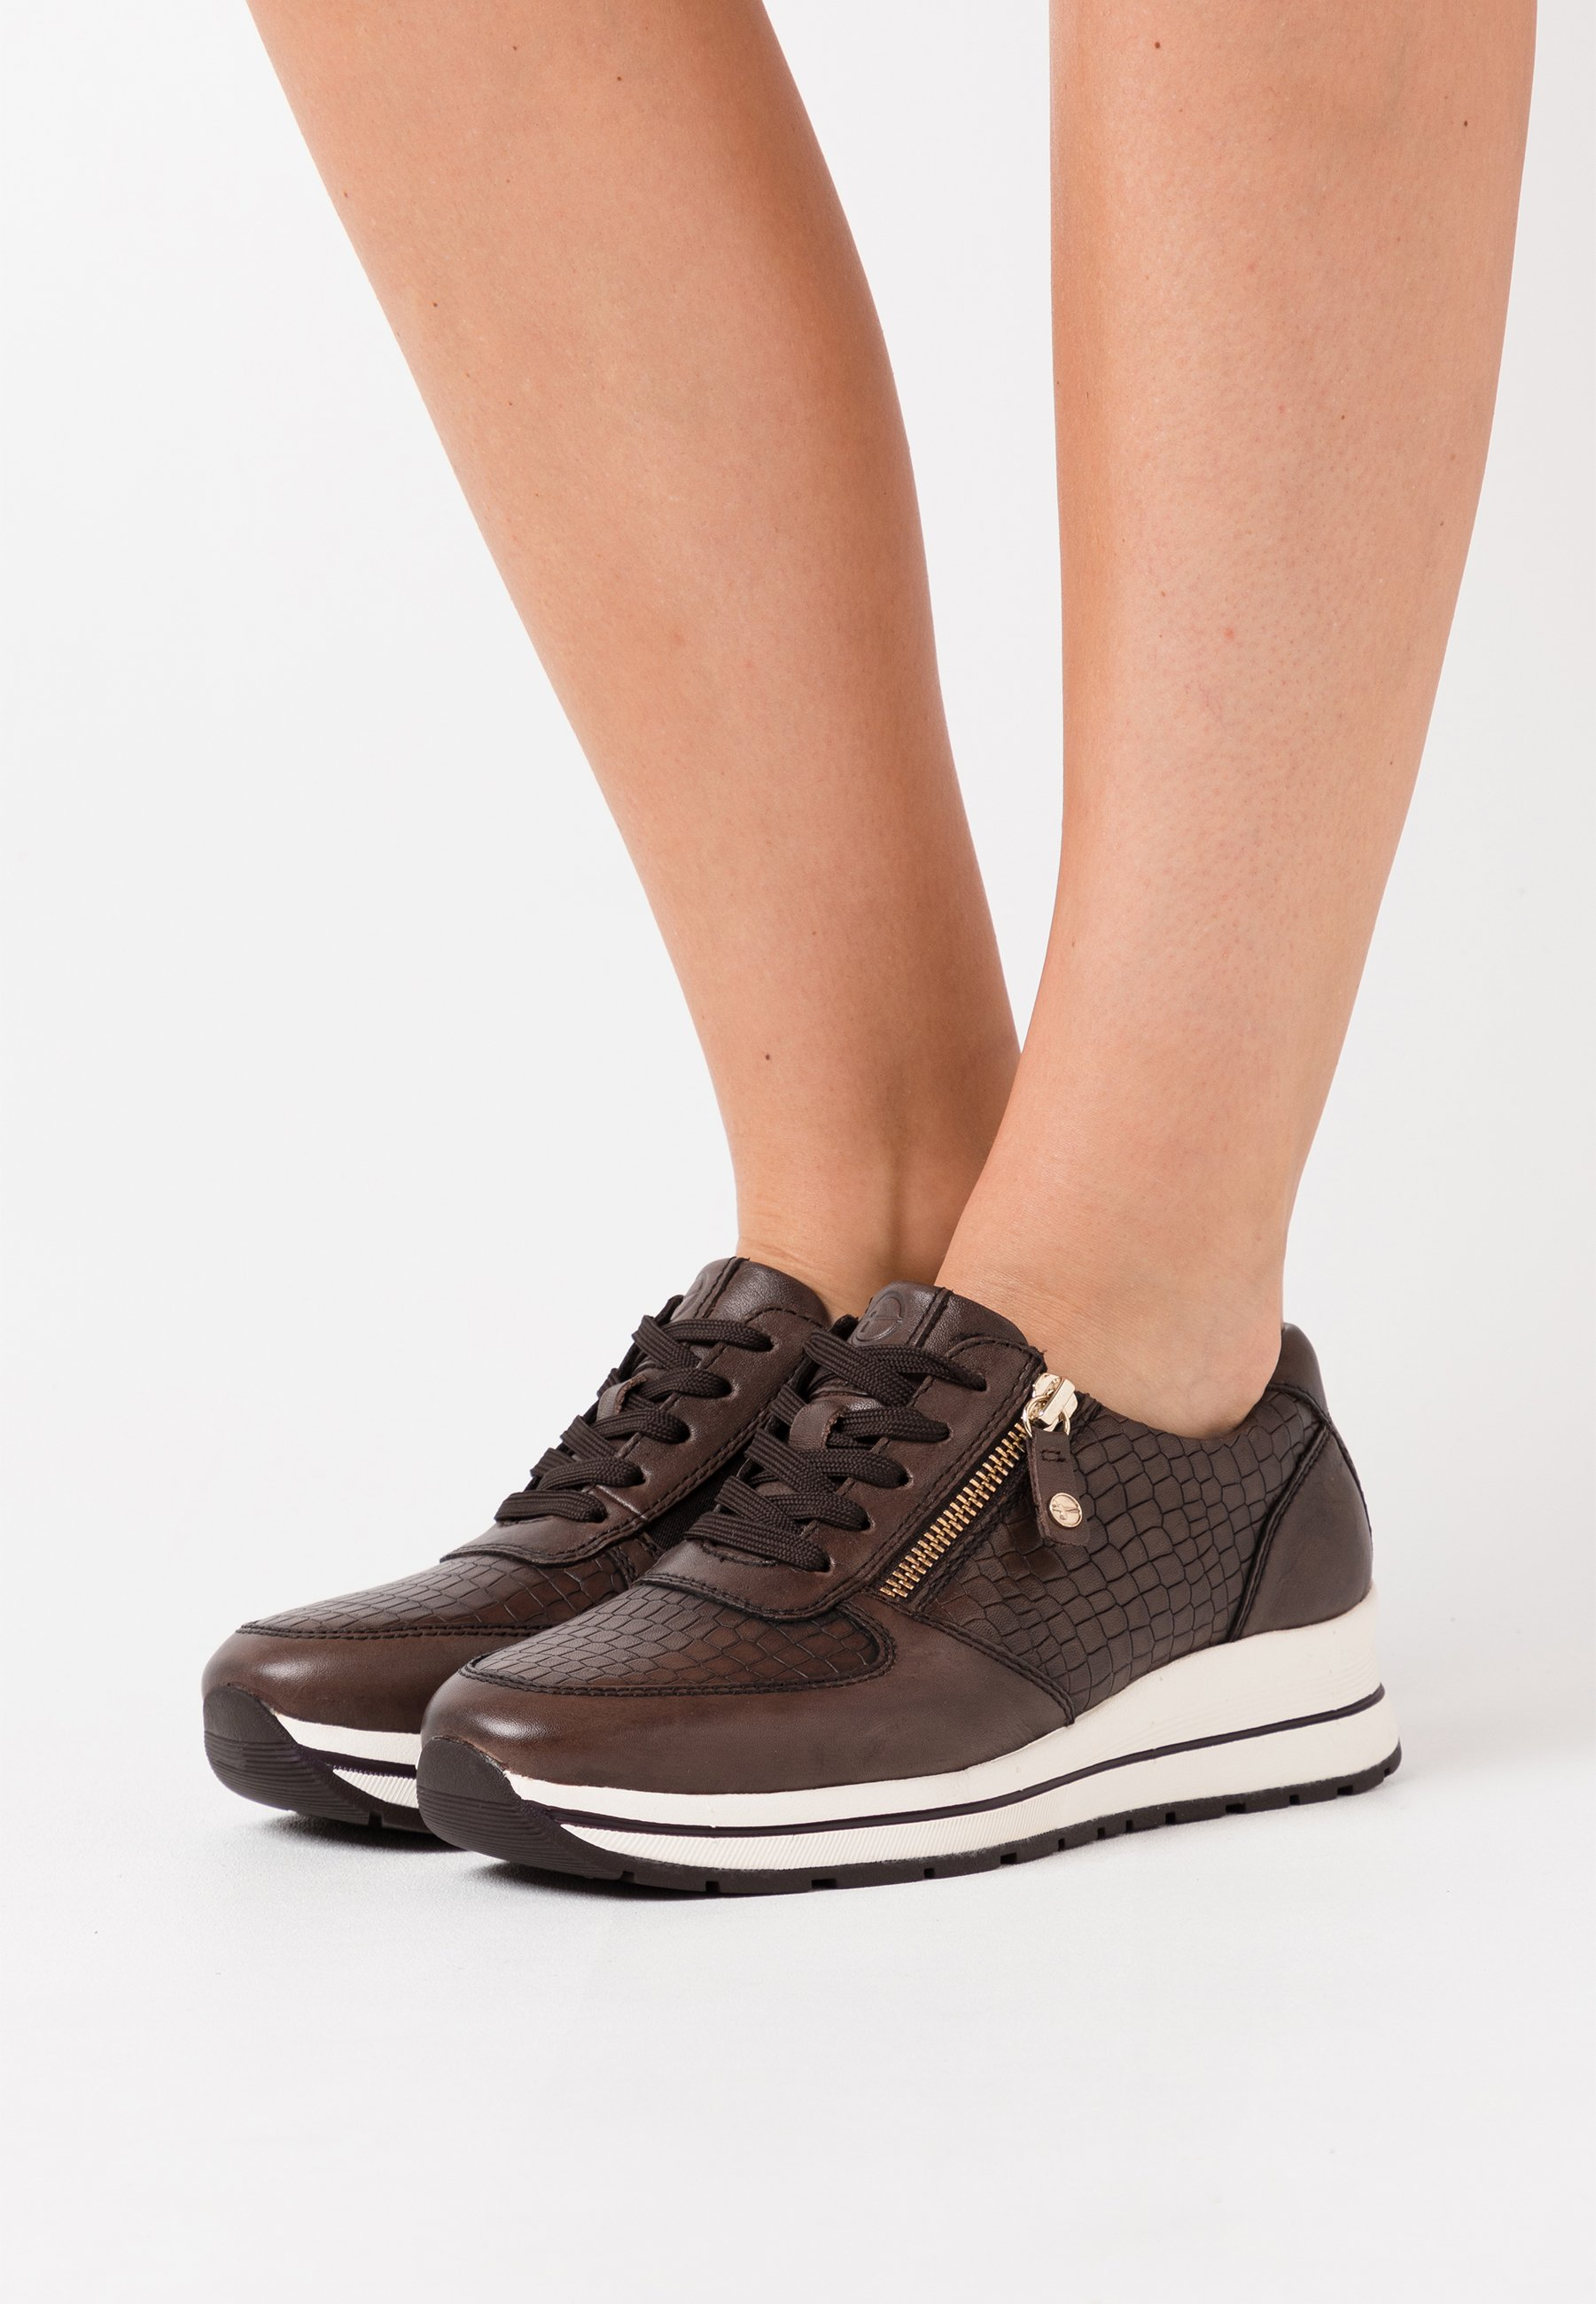 LACE UP Sneakers cafecroco